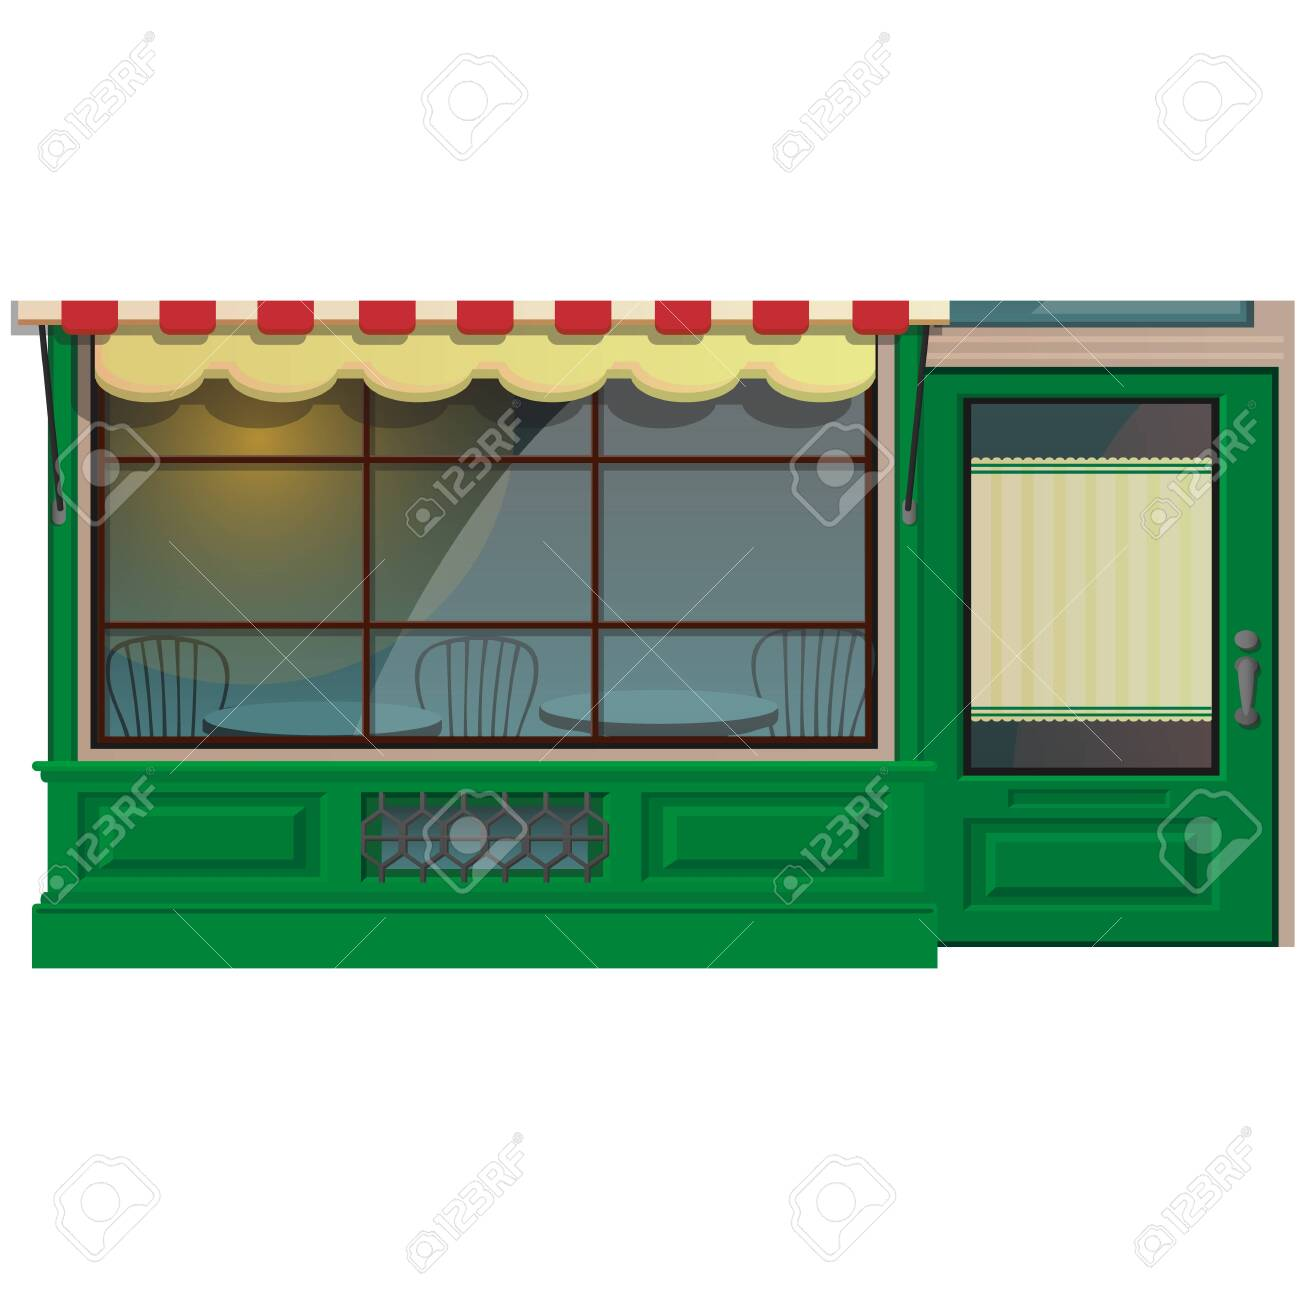 Mini Cafe Shop Exterior Isolated On White Royalty Free Cliparts Vectors And Stock Illustration Image 123992334